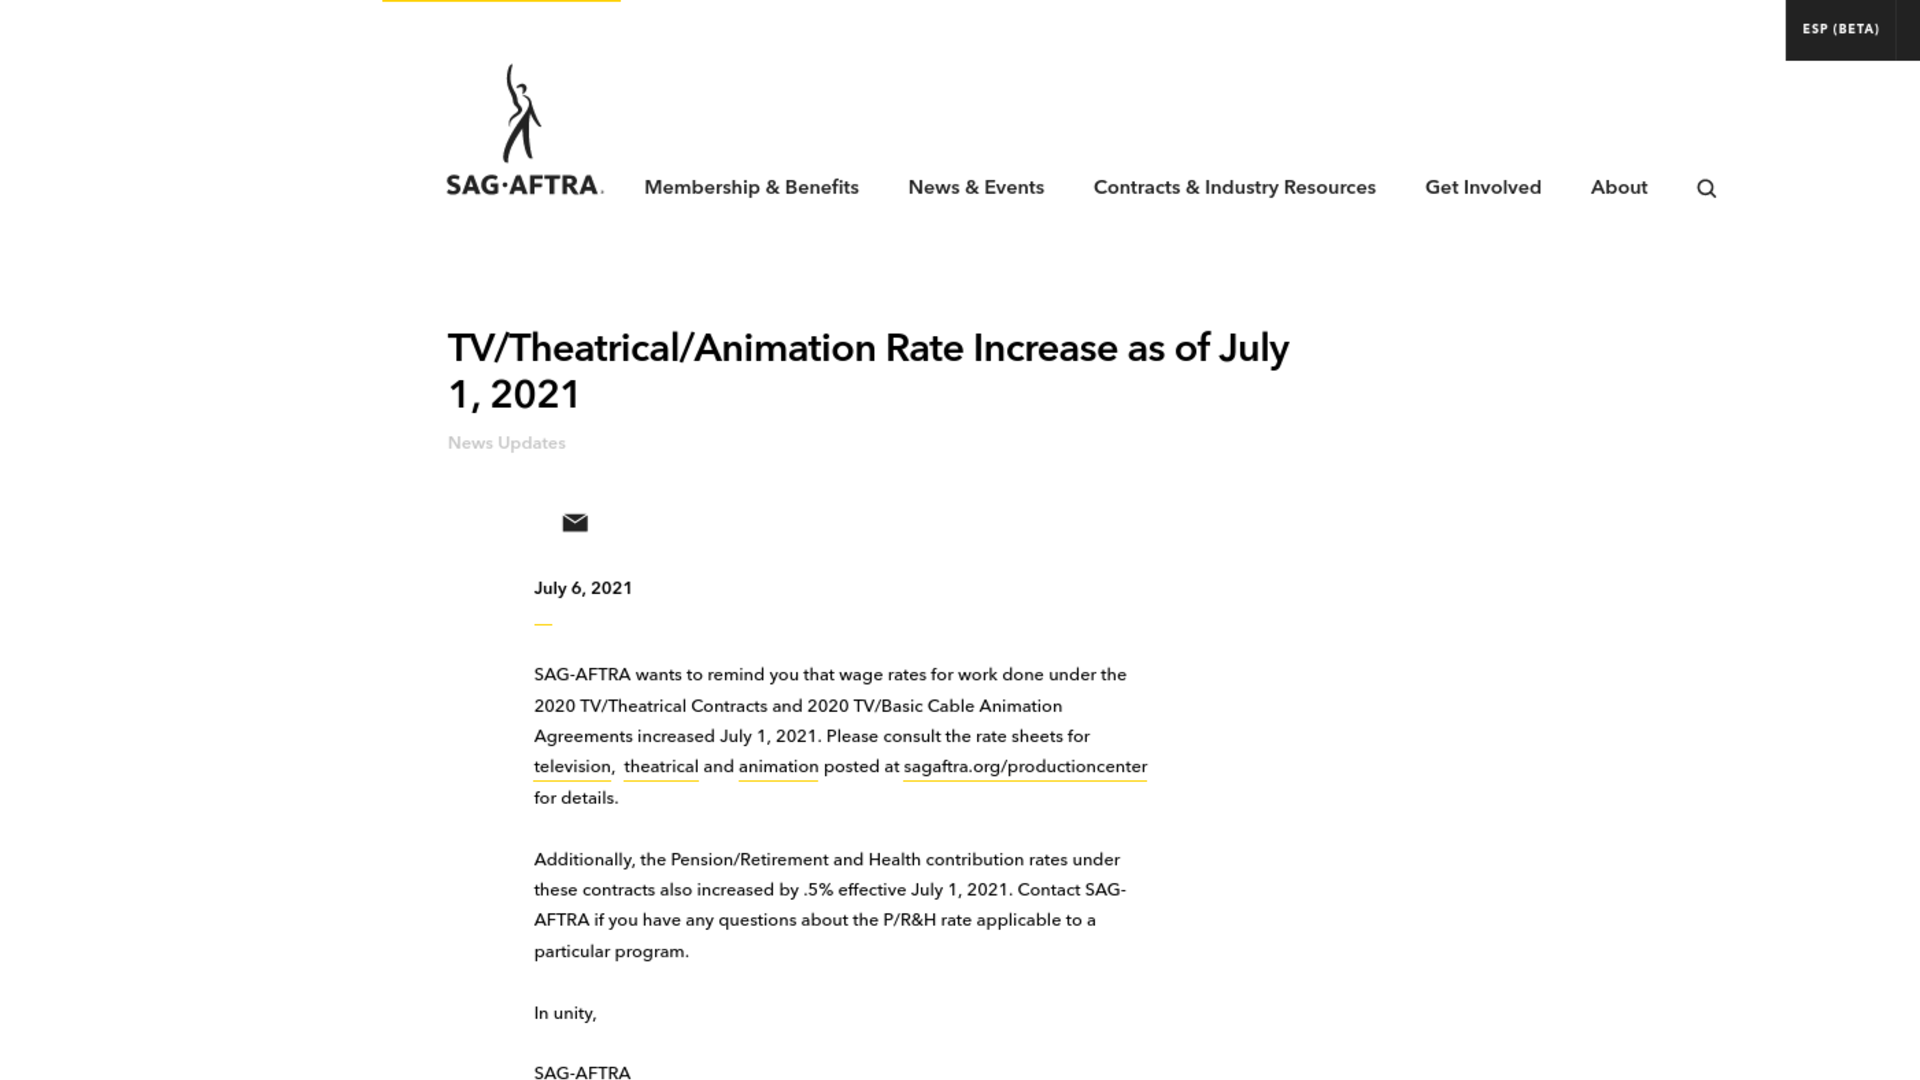 Fairness Rocks News TV/Theatrical/Animation Rate Increase as of July 1, 2021